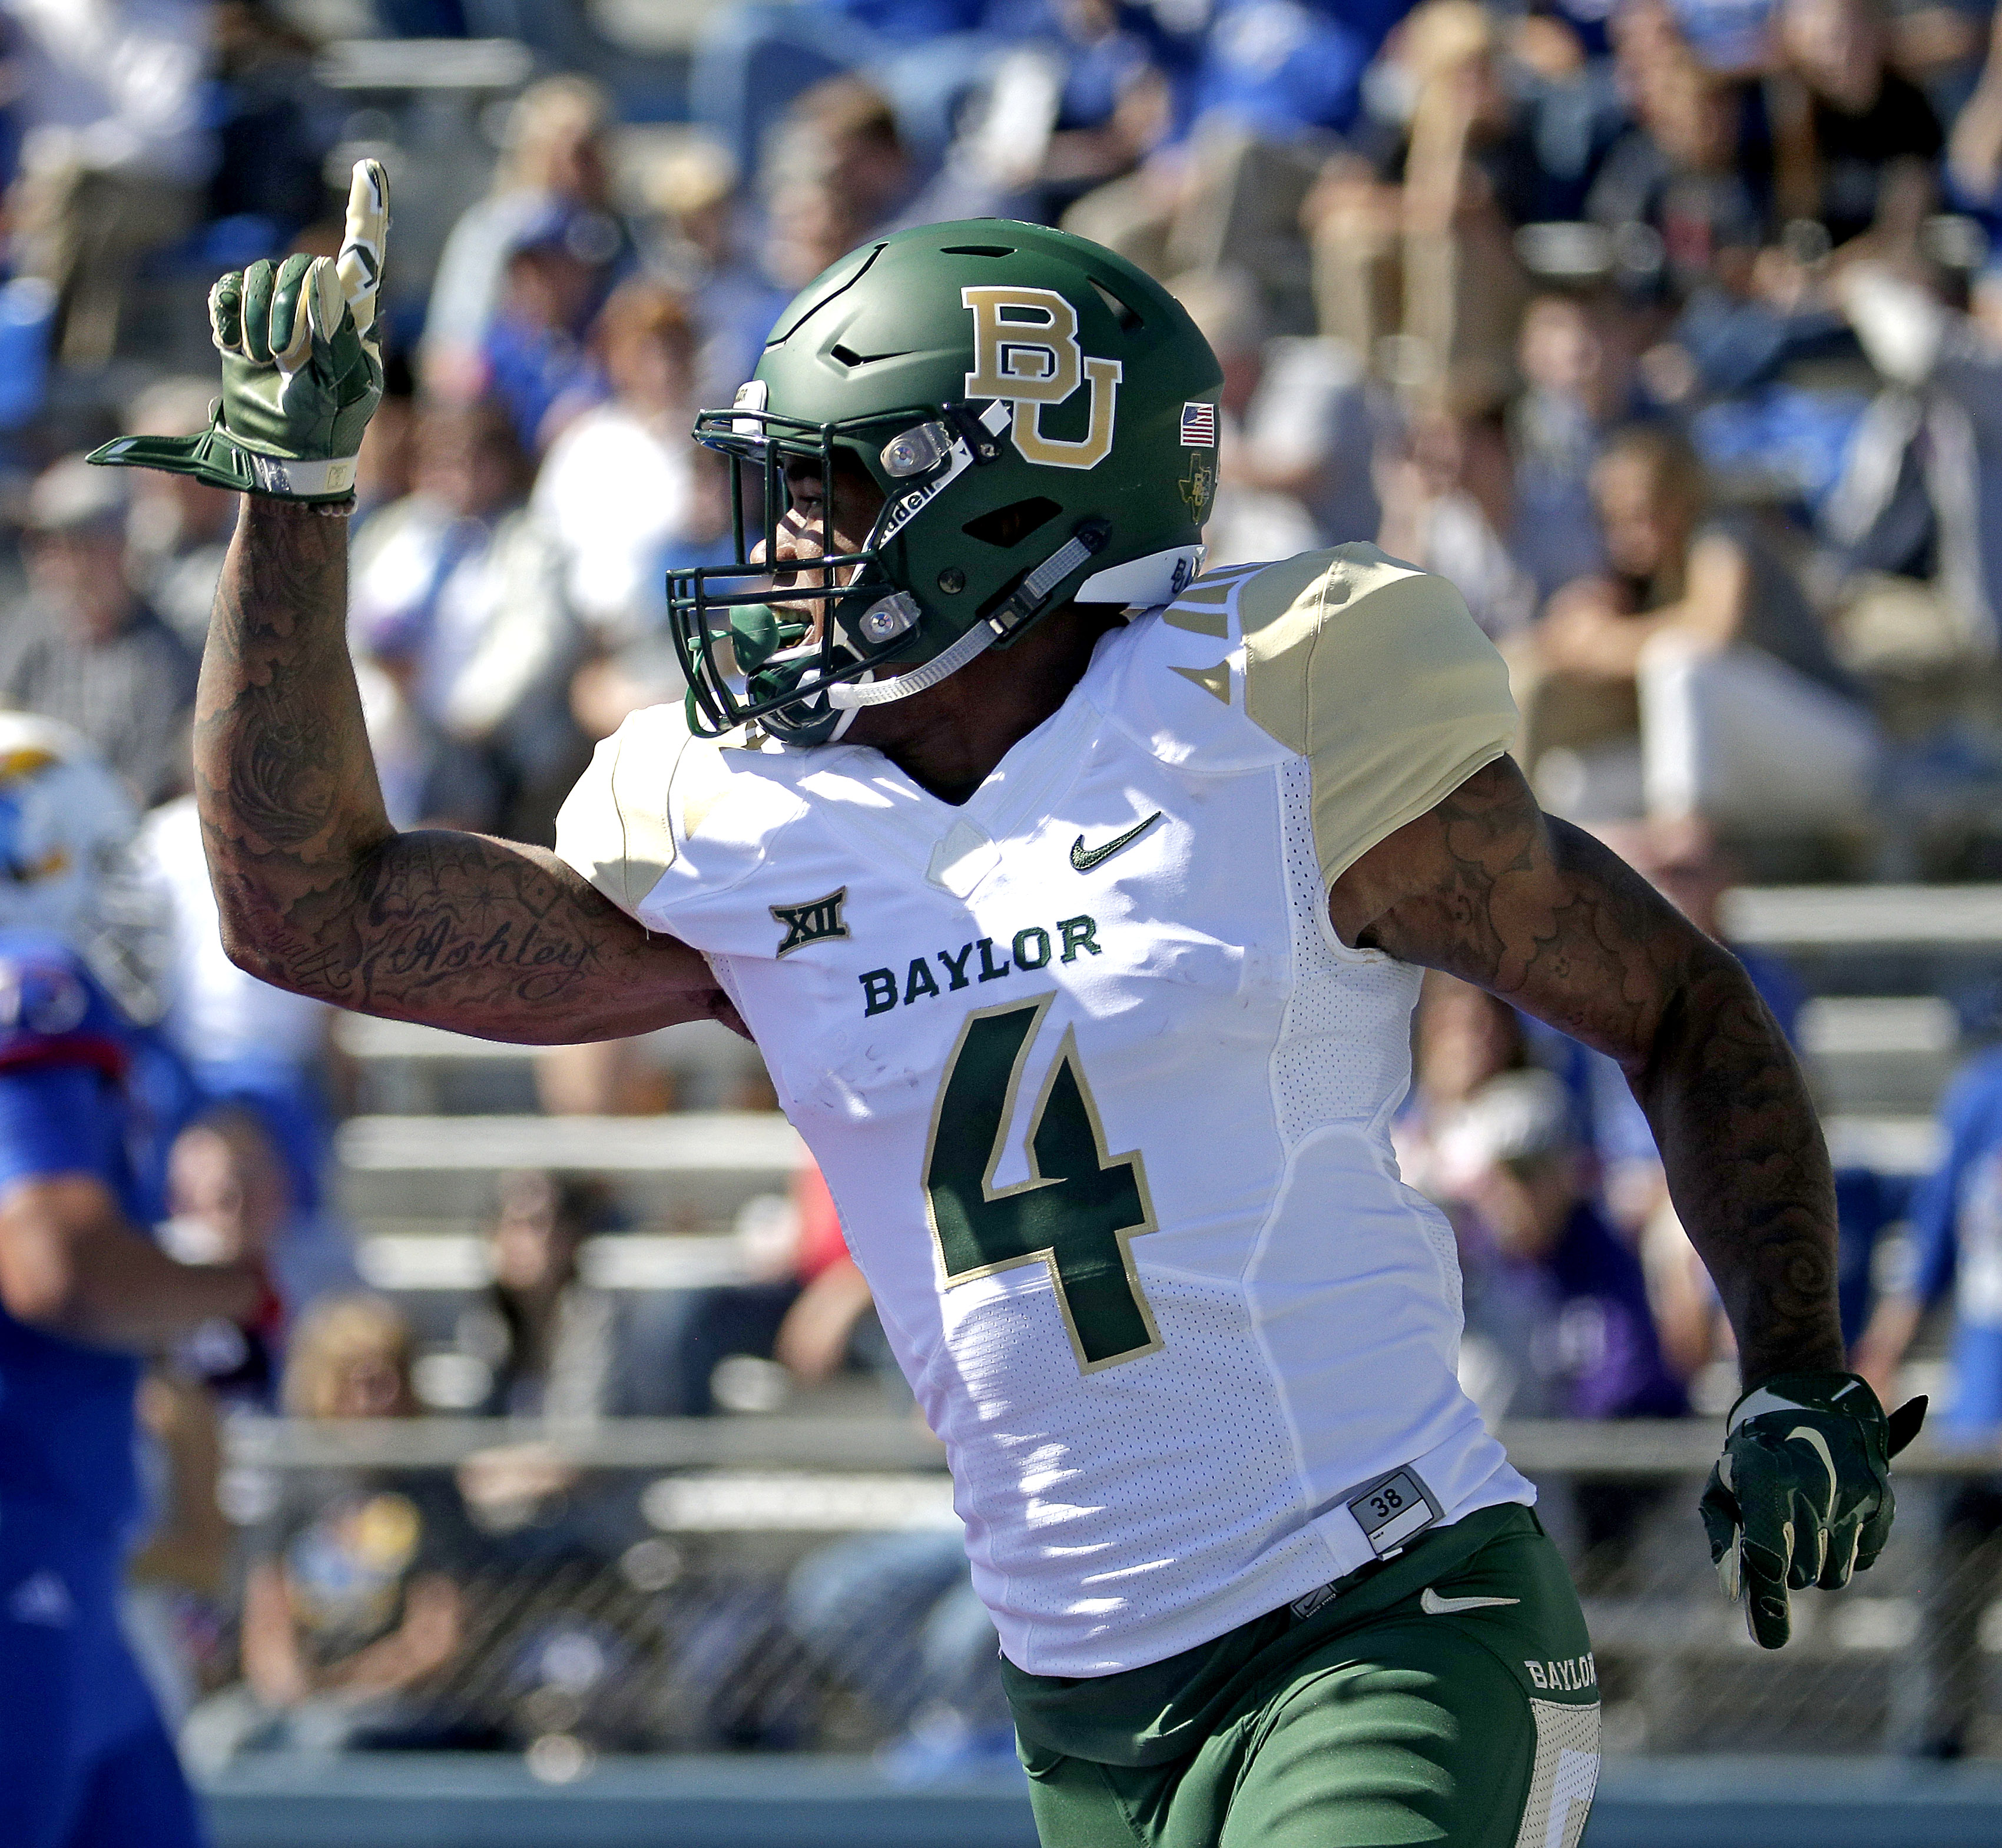 Baylor cornerback Xavien Howard celebrates after recovering a Kansas fumble and running the ball in for a touchdown during the first half of an NCAA college football game, Saturday, Oct. 10, 2015, in Lawrence, Kan. (AP Photo/Charlie Riedel)